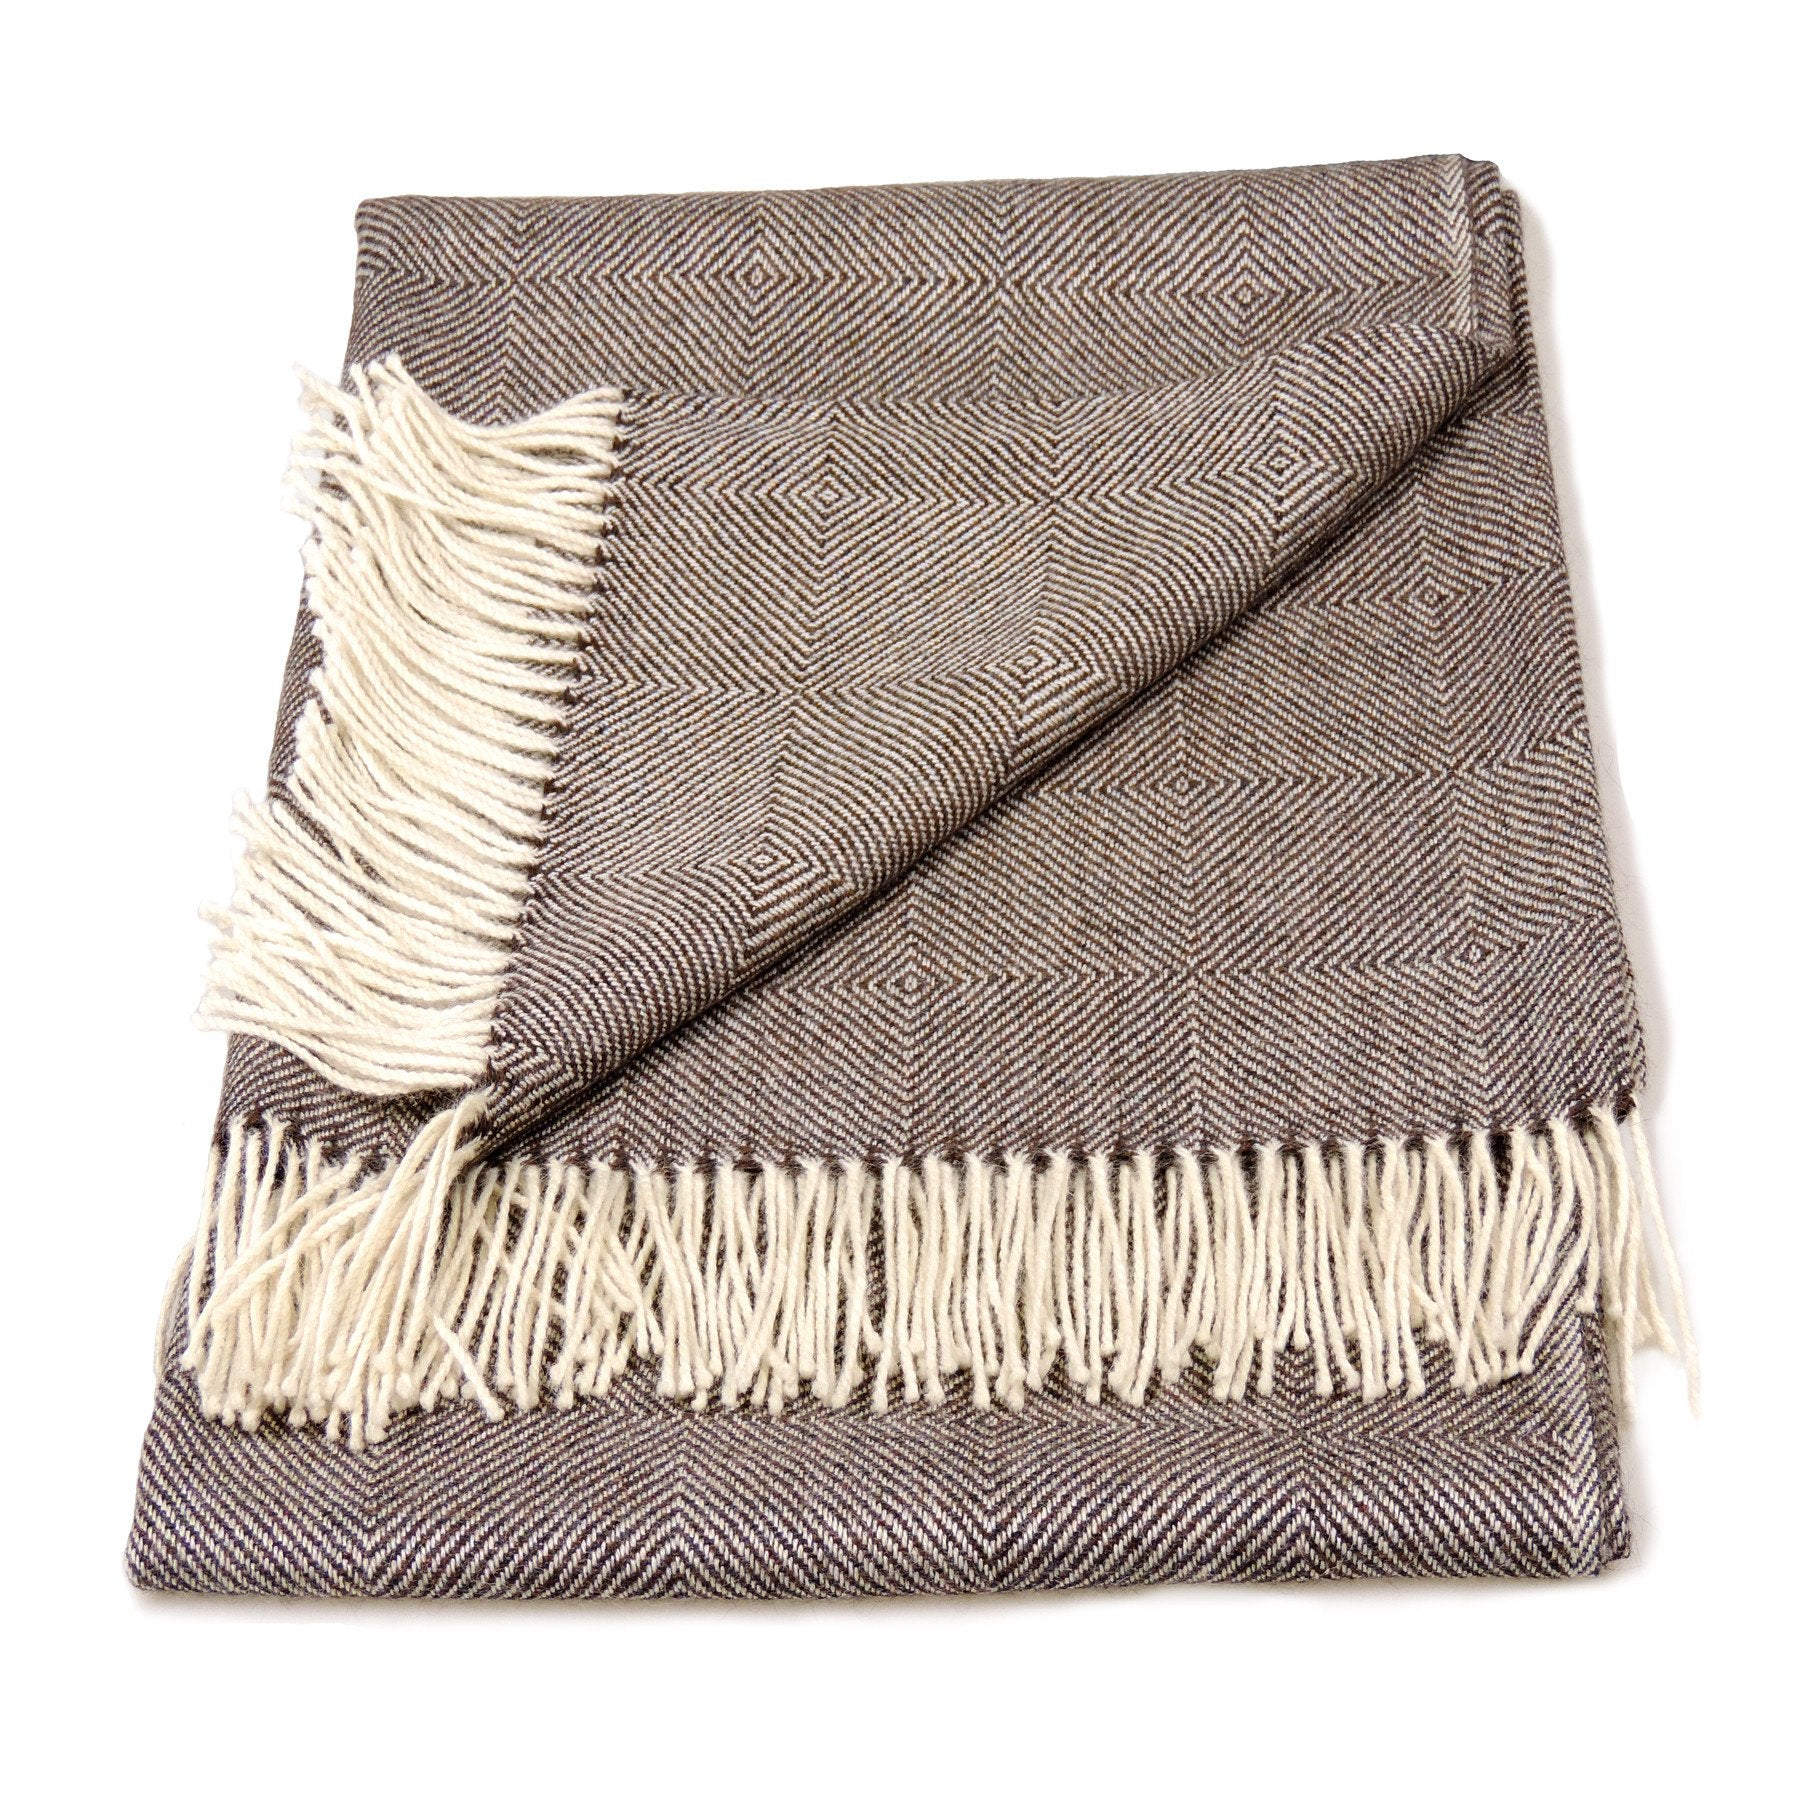 Baby Alpaca Geometric Throw Blanket in Brown & Cream - Qinti - The Peruvian Shop